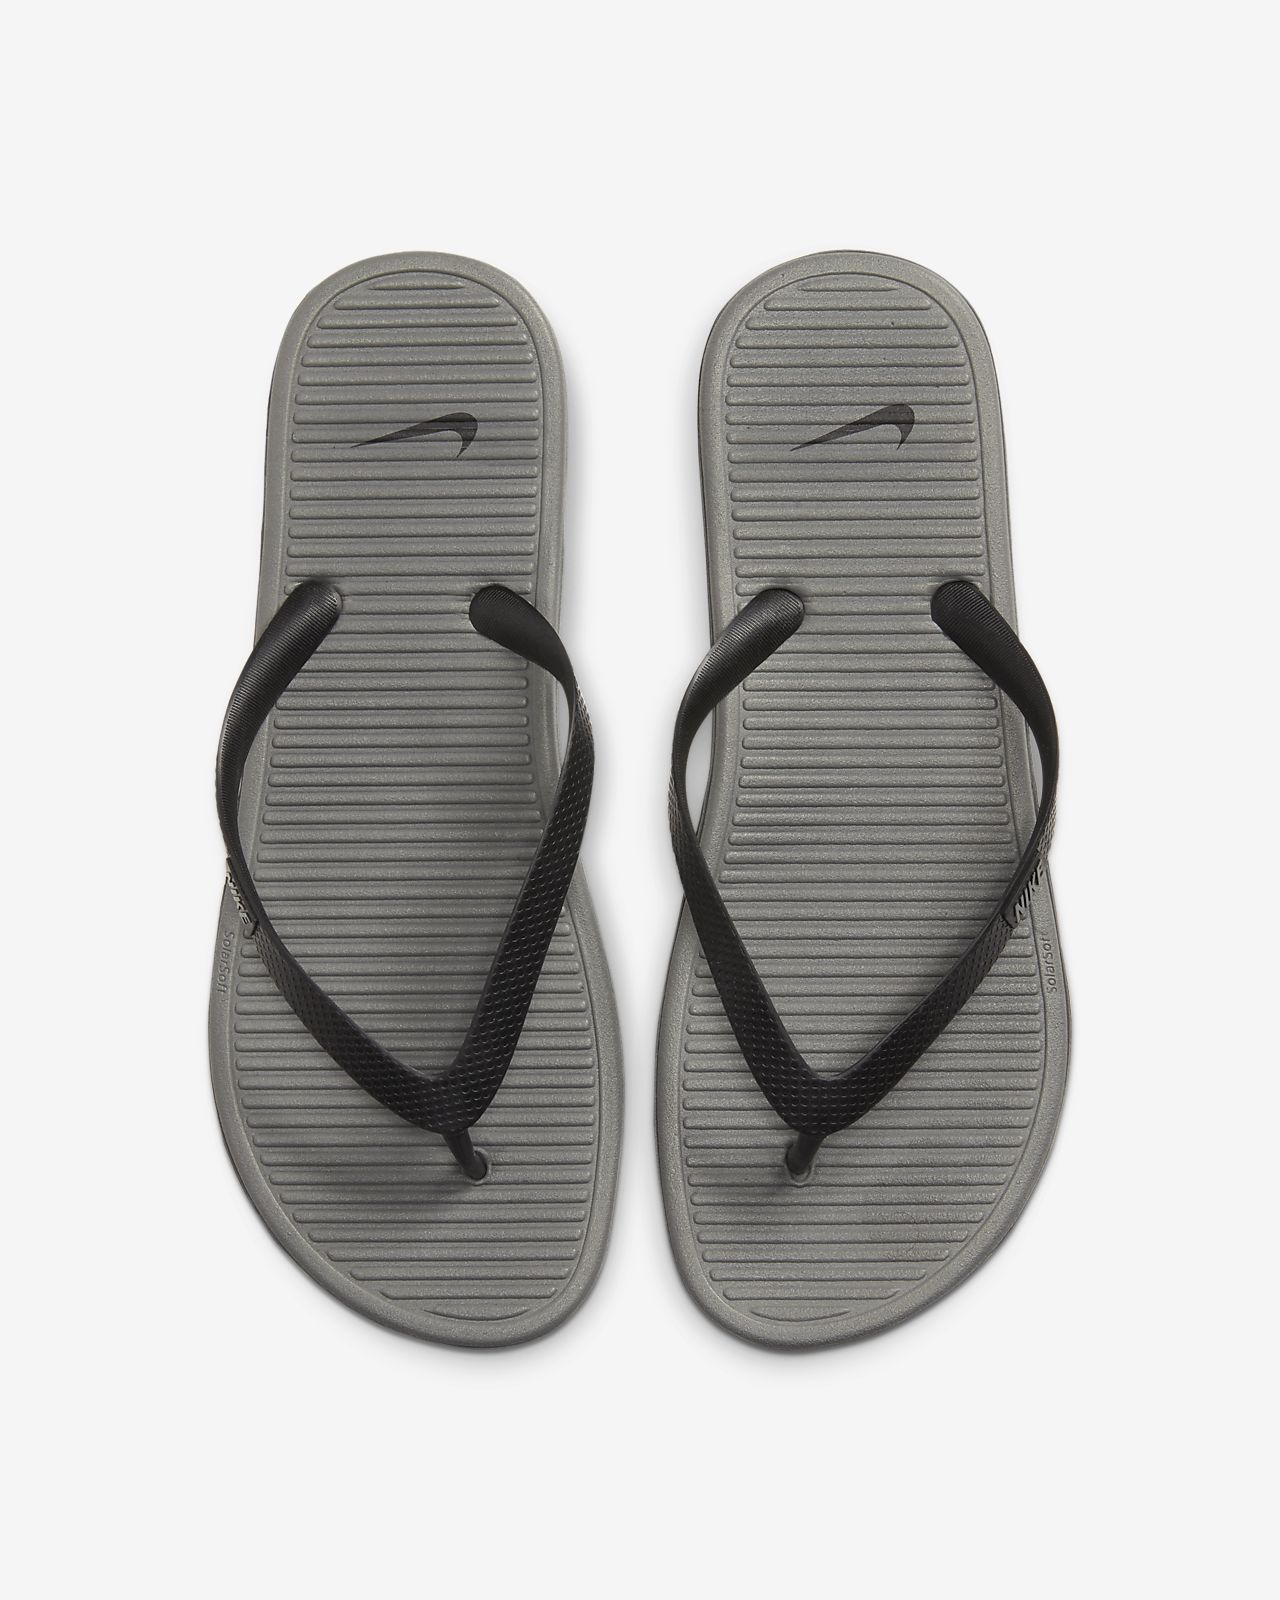 Nike Solarsoft II Men's Flip Flop